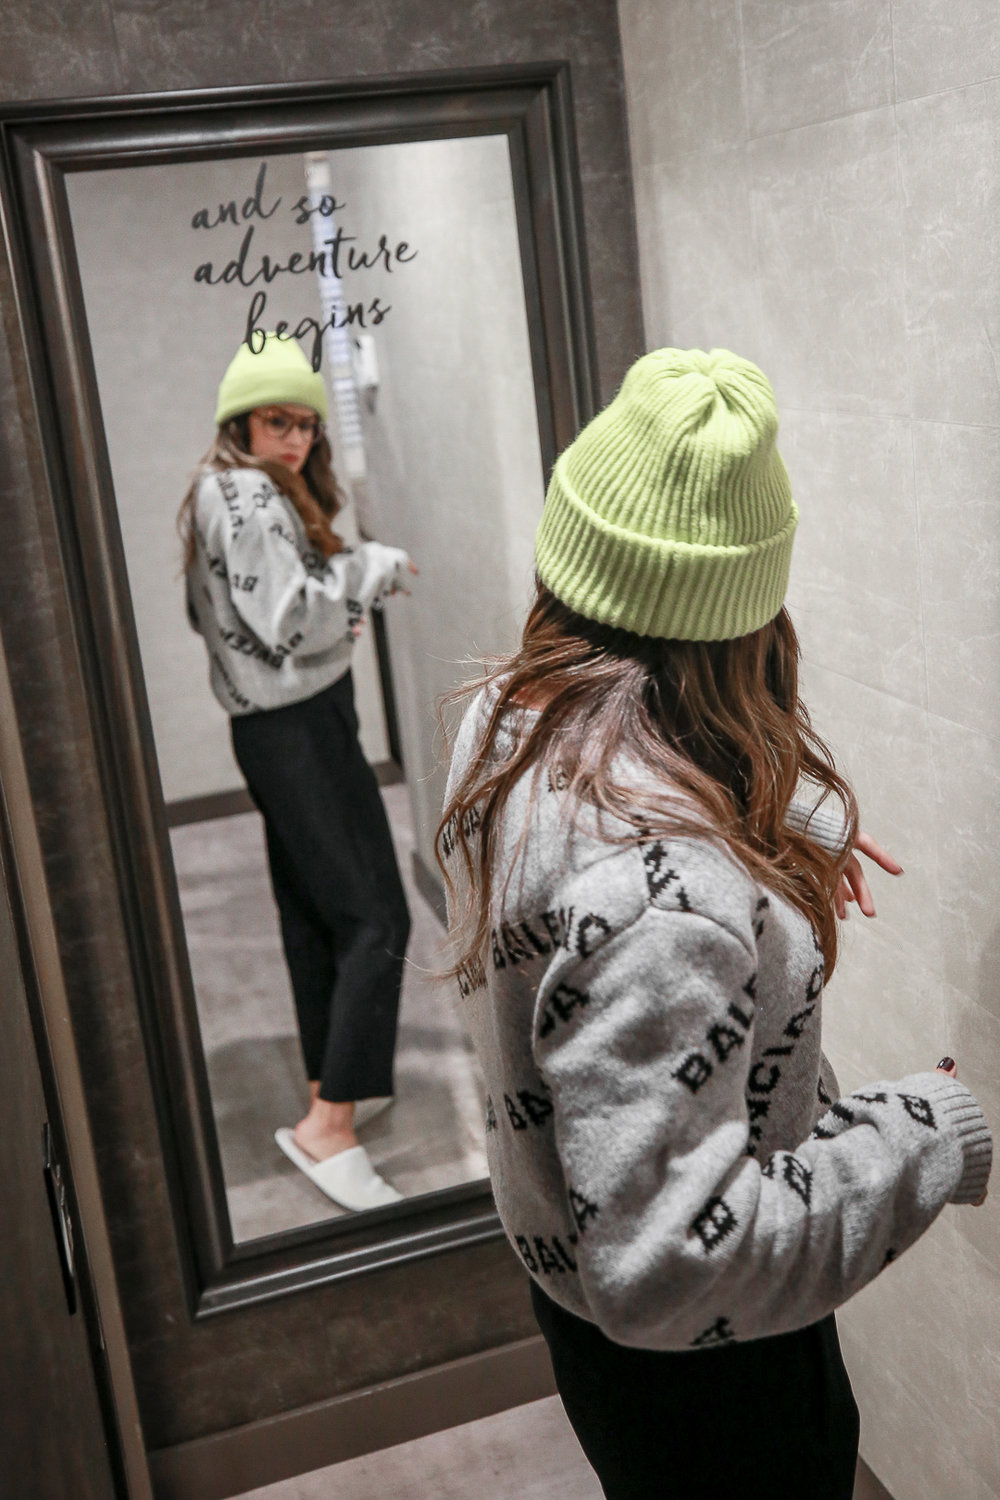 Nathalie Martin wearing Balenciaga logo sweater, Saint Laurent canvas sneakers, and neon green beanie and Bonlook Jerry glasses, streetstyle, woahstyle.com_3830.jpg